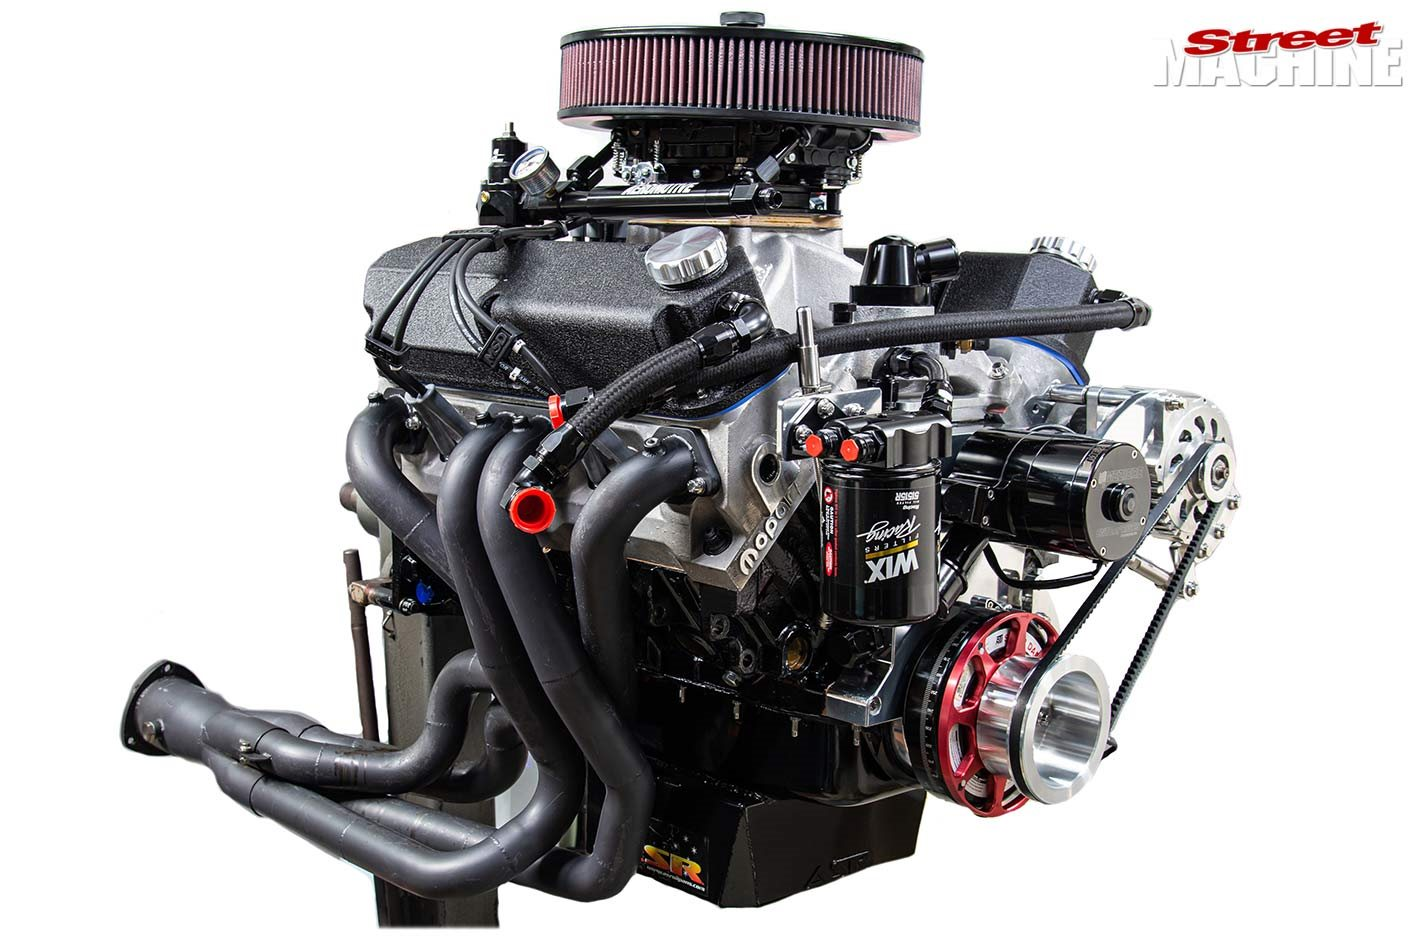 418ci small-block Chrysler - Mill Of The Month